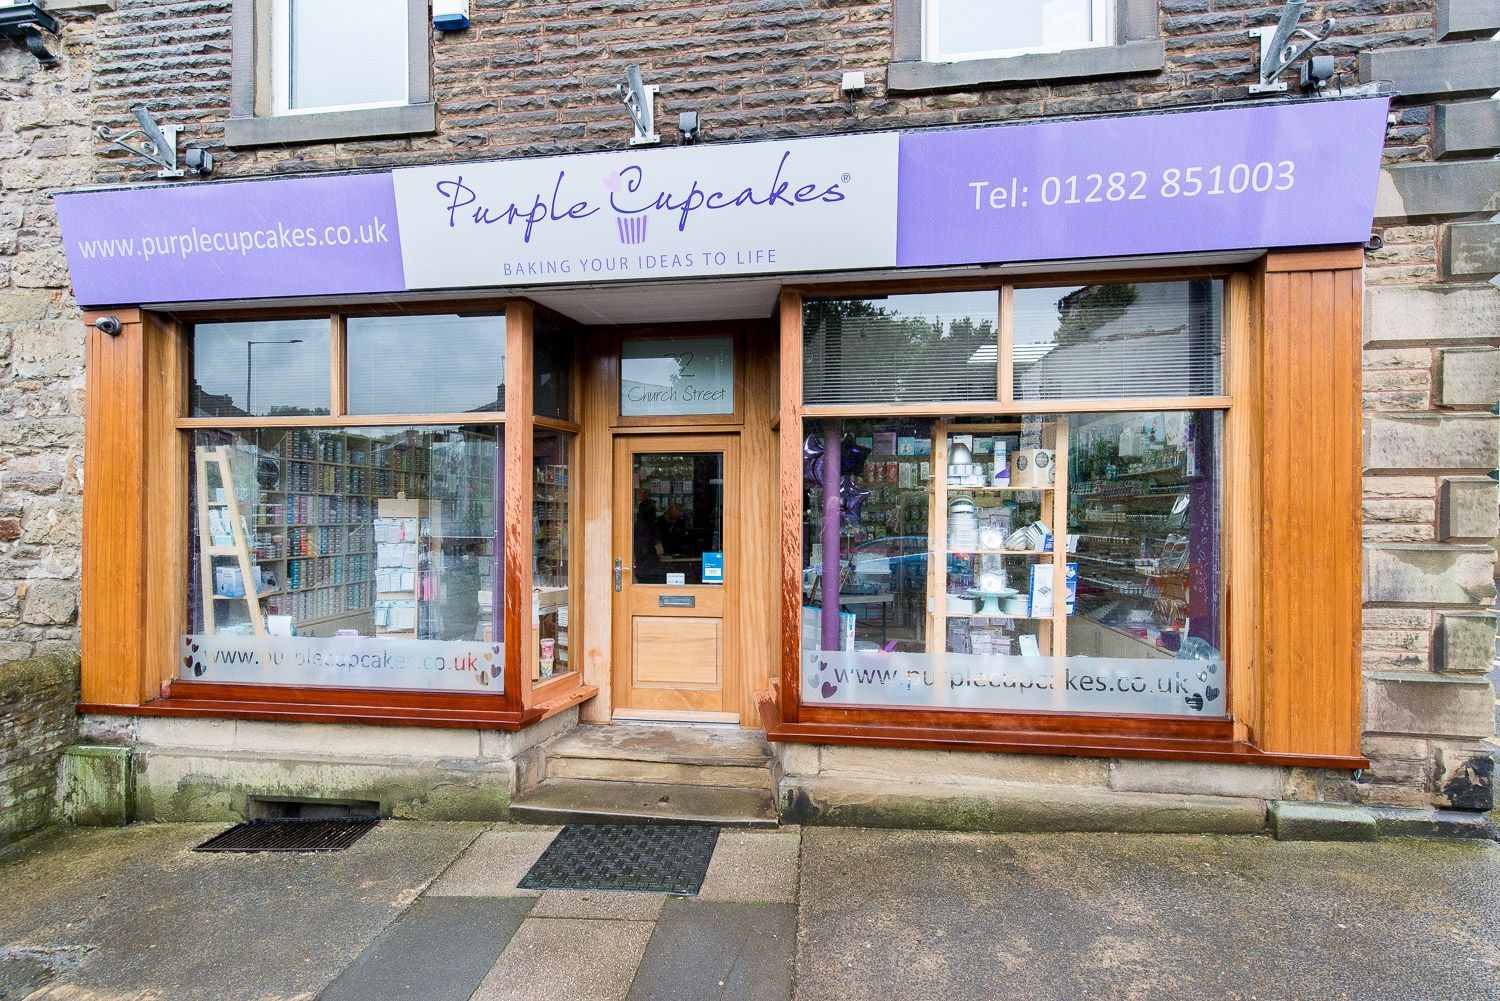 Purple Cupcakes Cake Decorating Shop, Lancashire